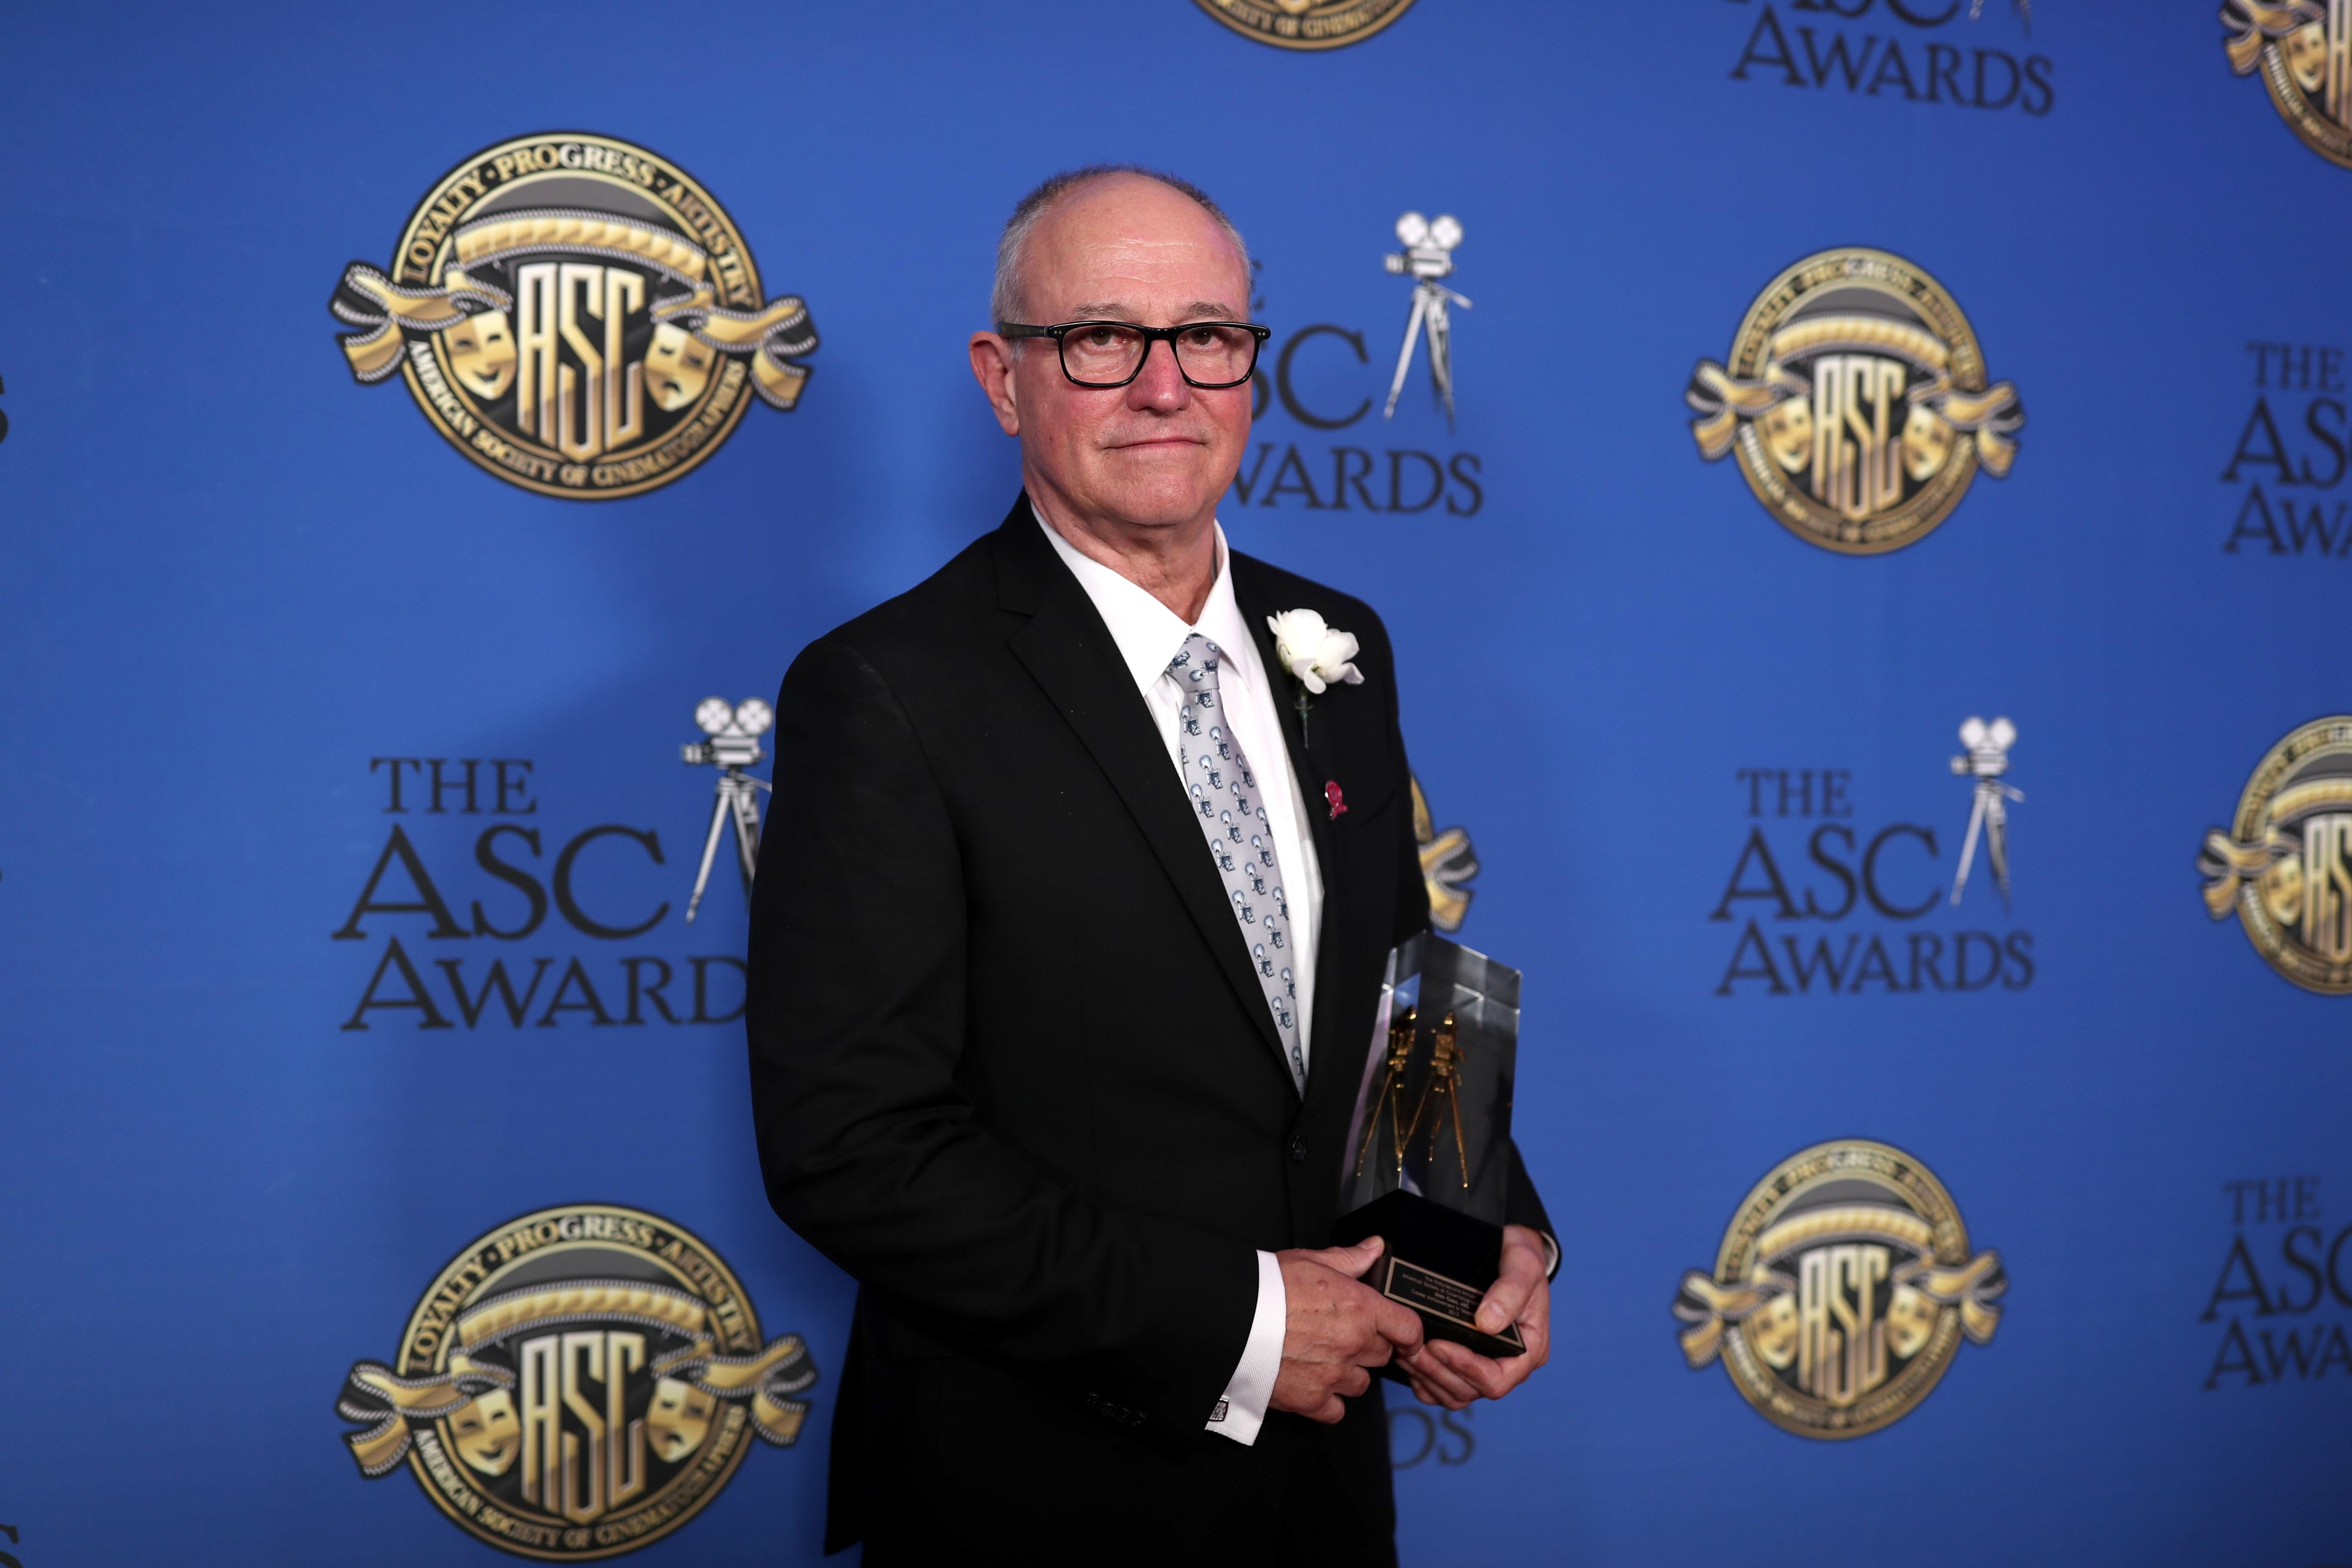 Alan Caso poses with the Career Achievement in Television Award during the 32nd Annual American Society Of Cinematographers Awards.